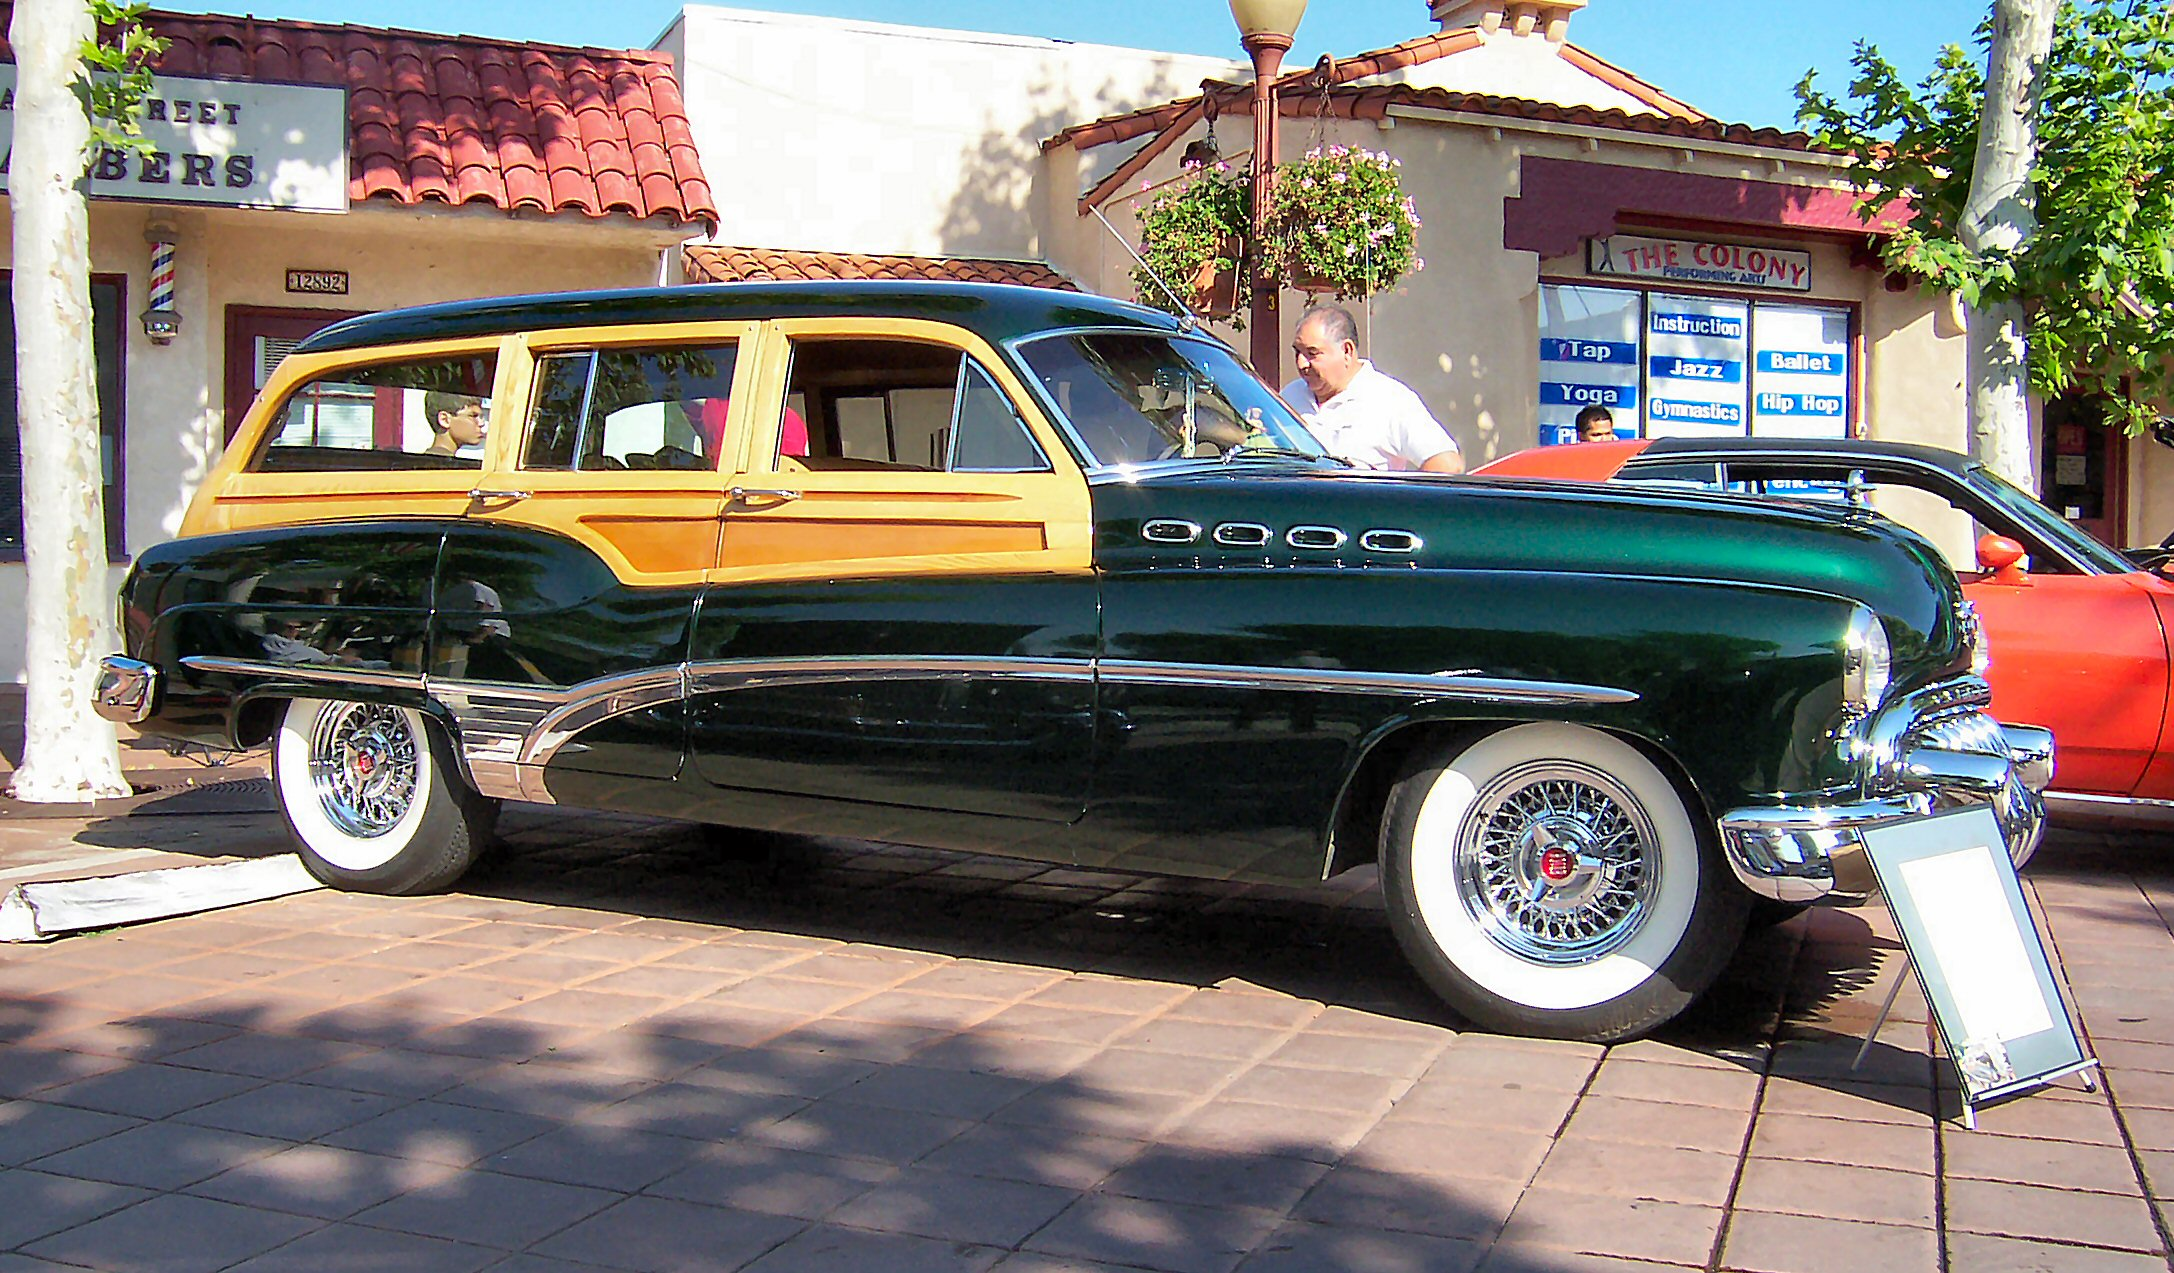 File:1950 Buick Roadmaster Estate Wagon.jpg - Wikipedia, the free ...